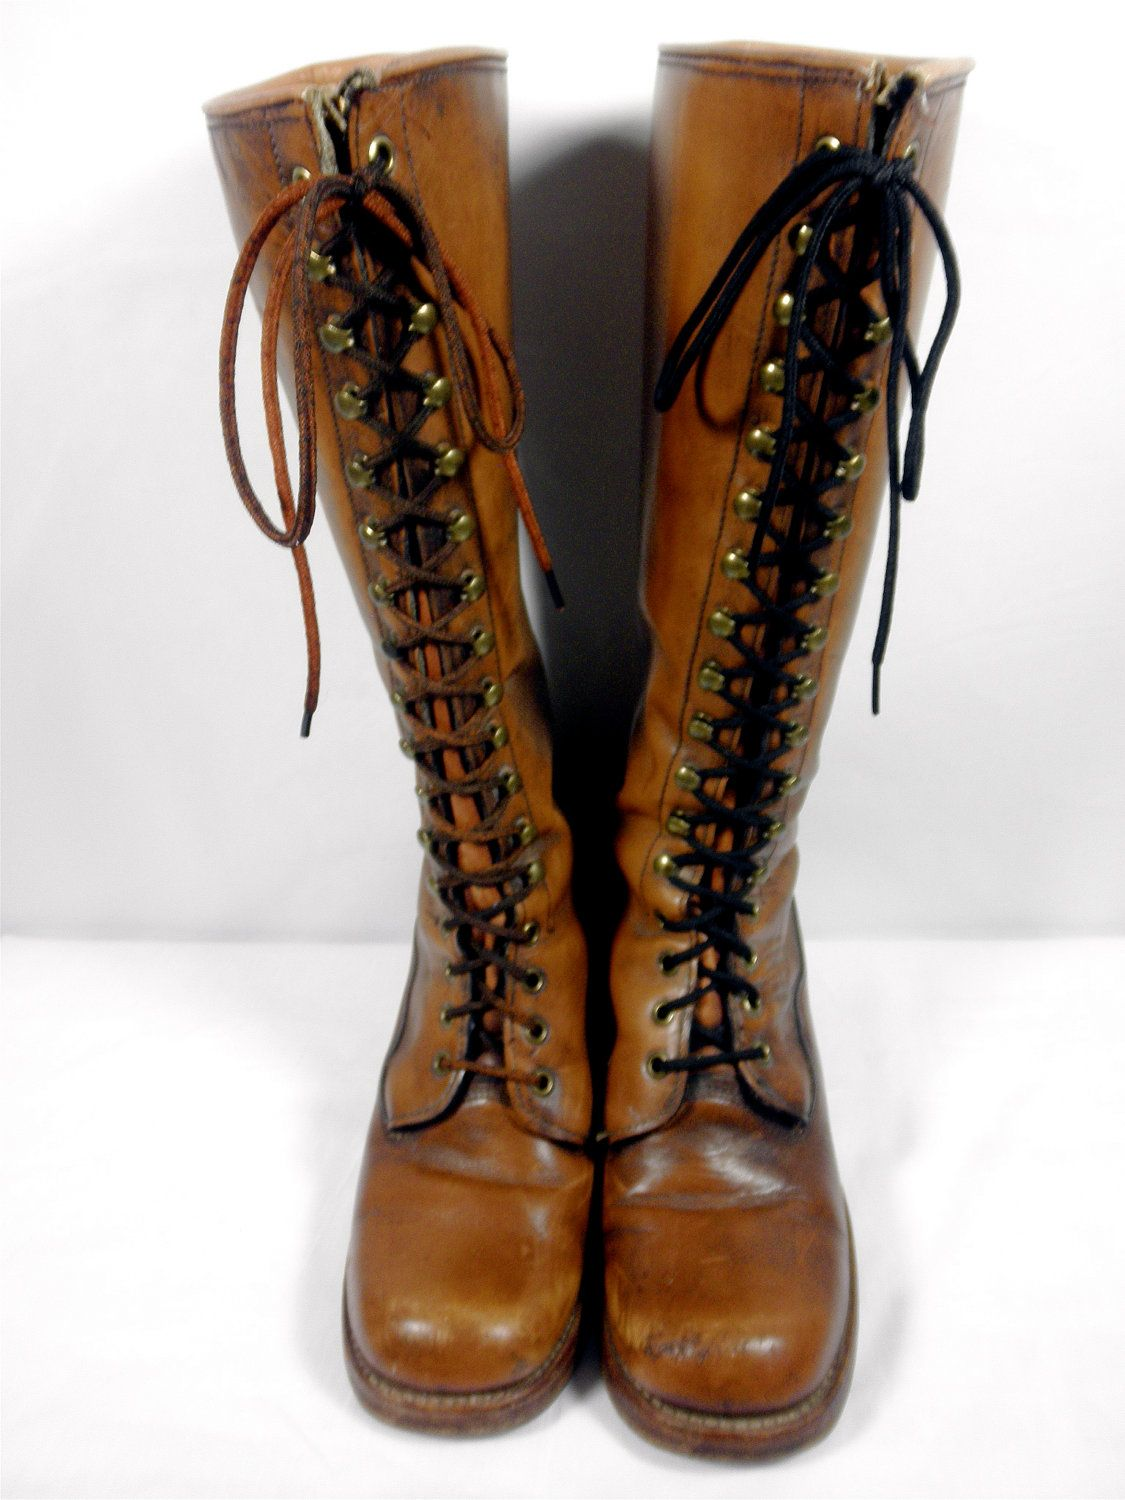 7d8e5f337 Vintage Black Label Frye Lace Up Campus Boot with Tall Stacked Leather Heel  - Women's Size 8 1/2 - 1970's Frye Boots. $250,00, via Etsy.